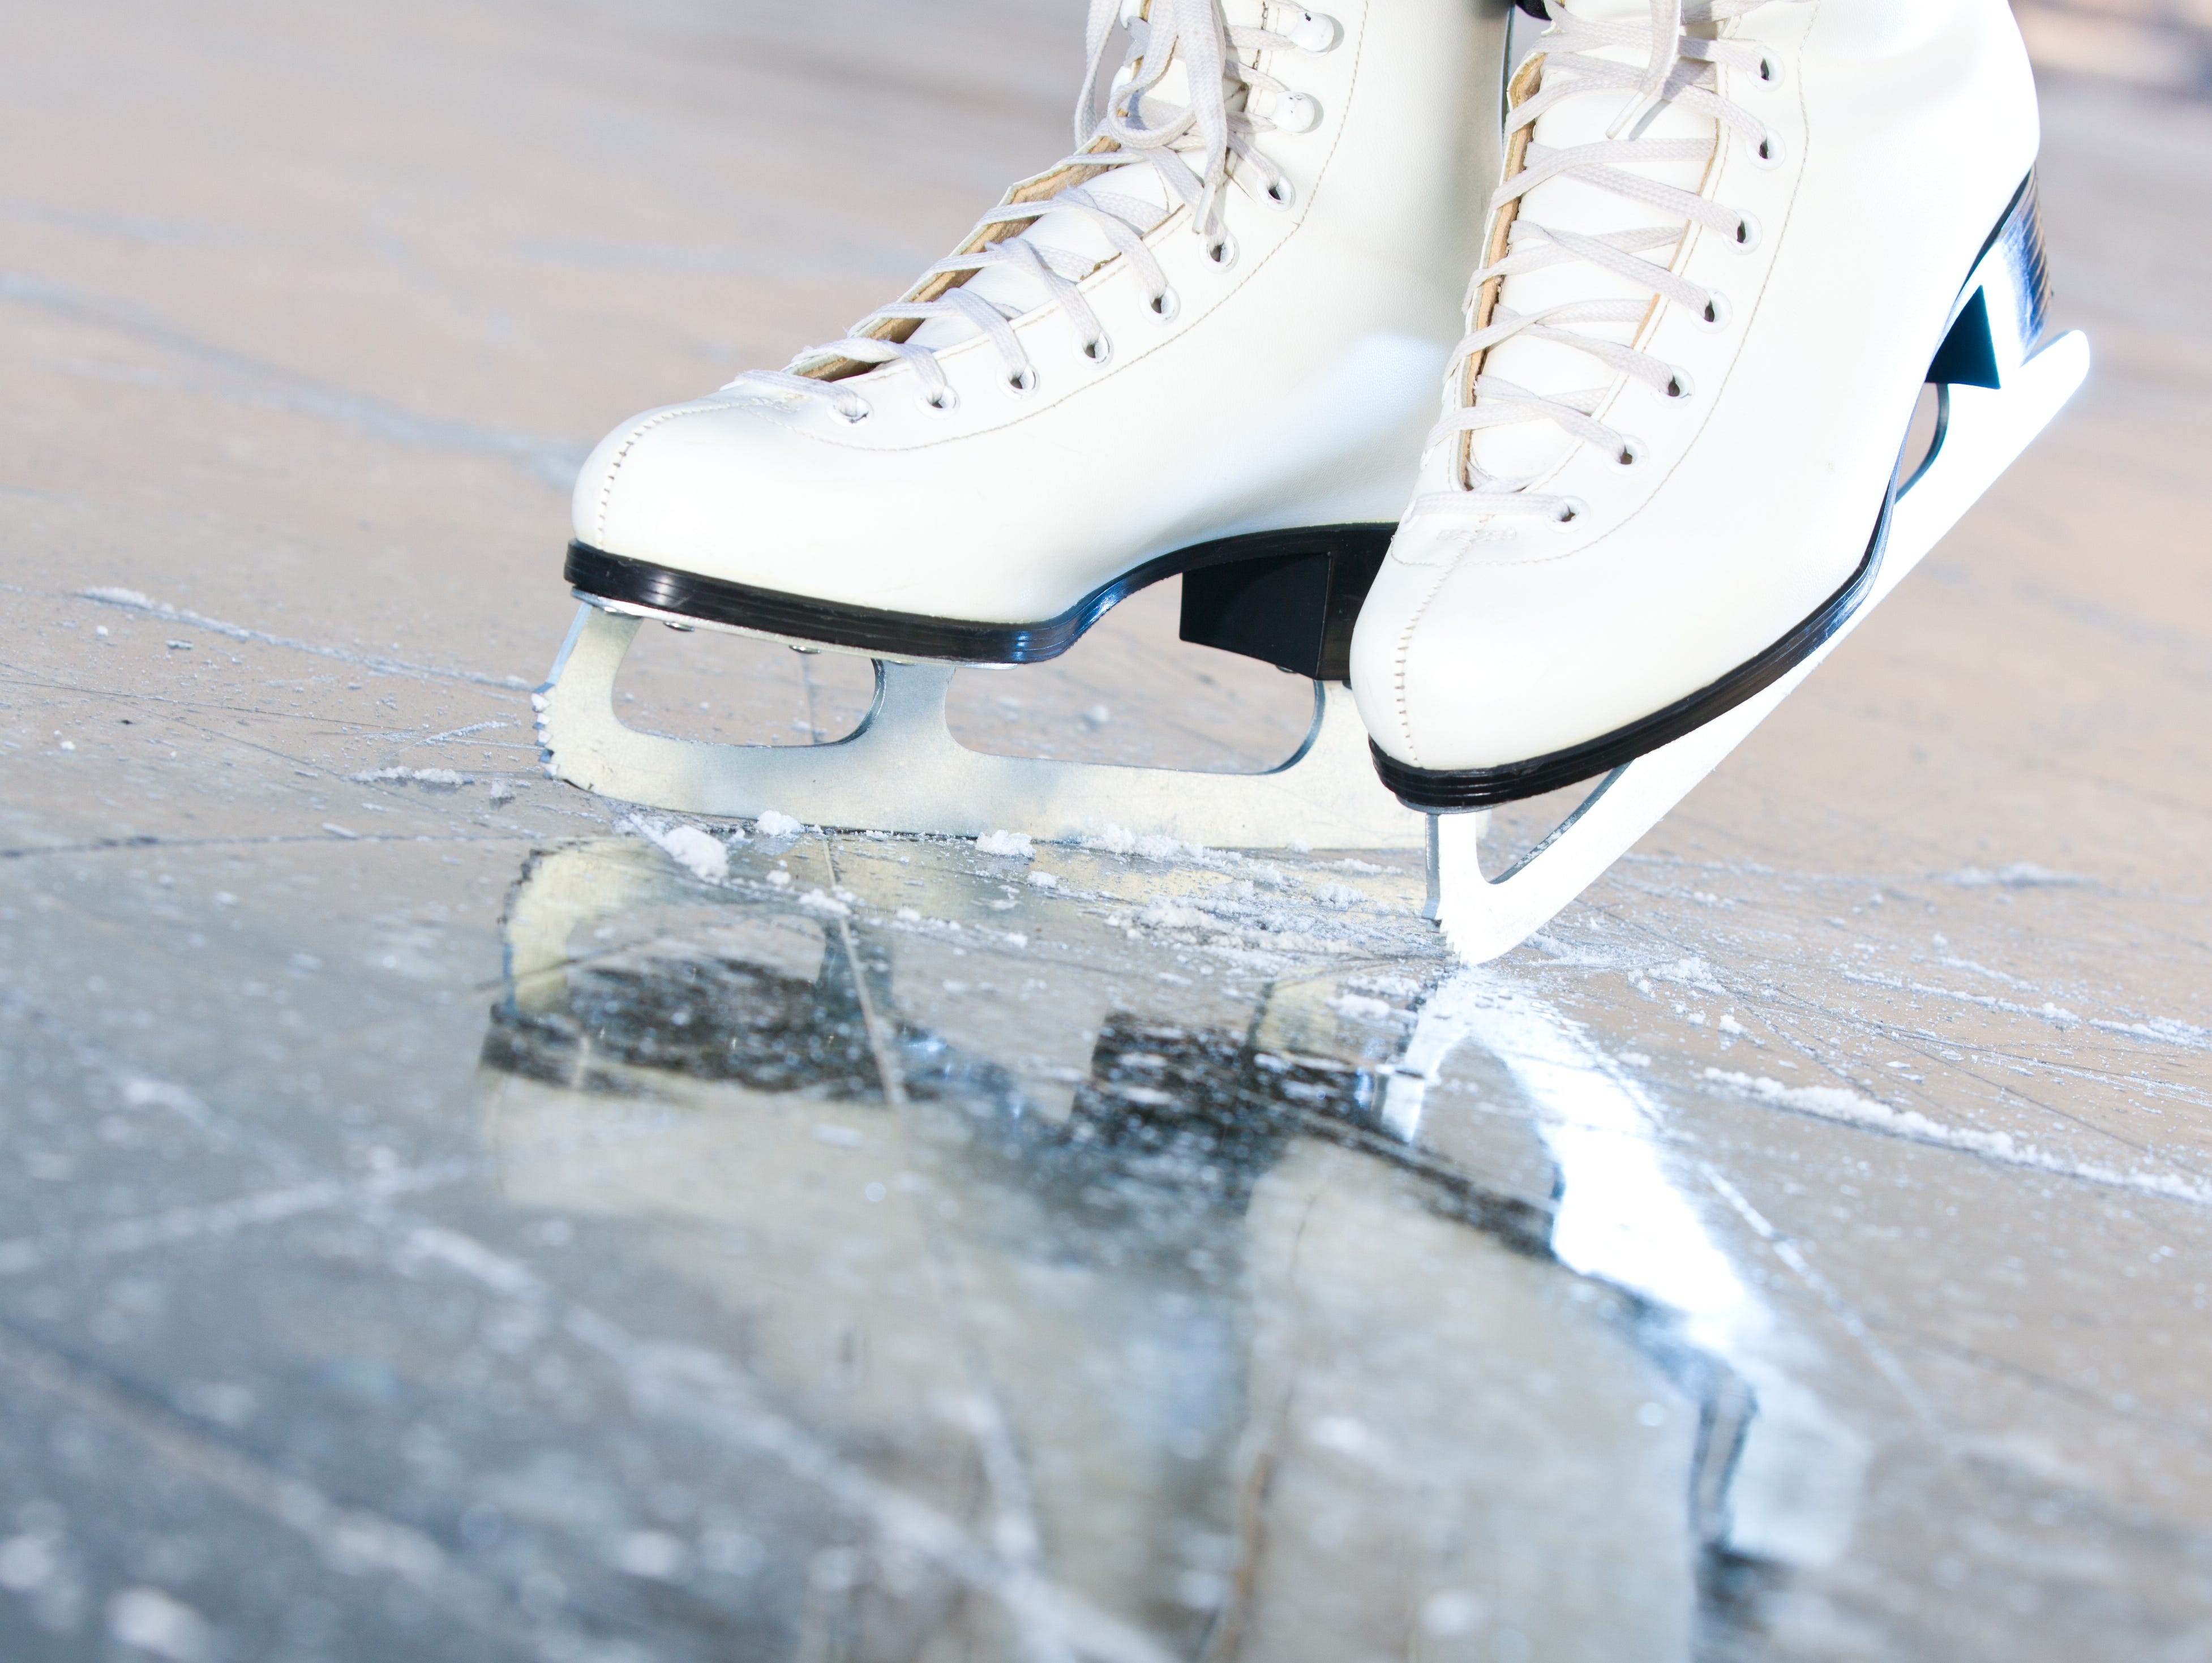 Insiders can enter to win a skating party for 10 at Westchester Skating Academy 1/10 - 2/3